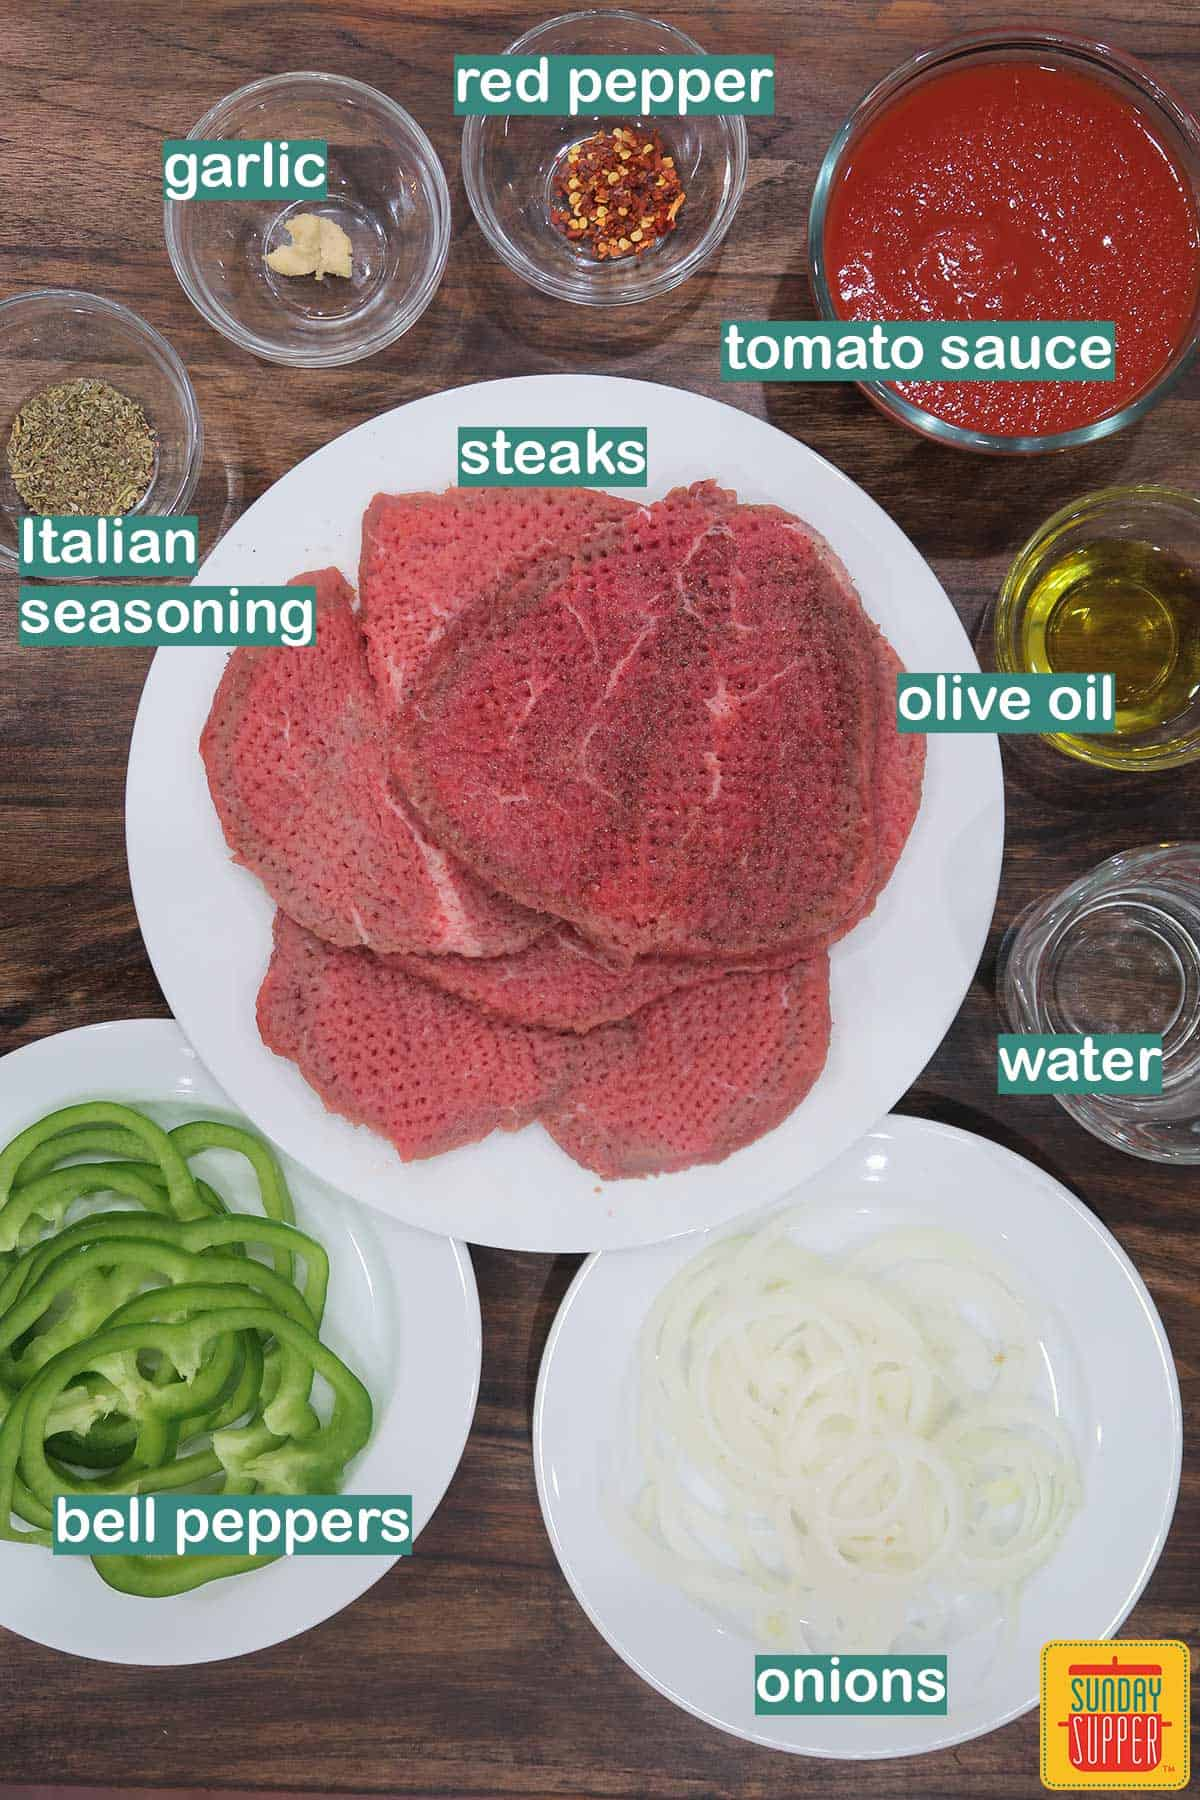 Ingredients for steak pizzaiola labeled on the table